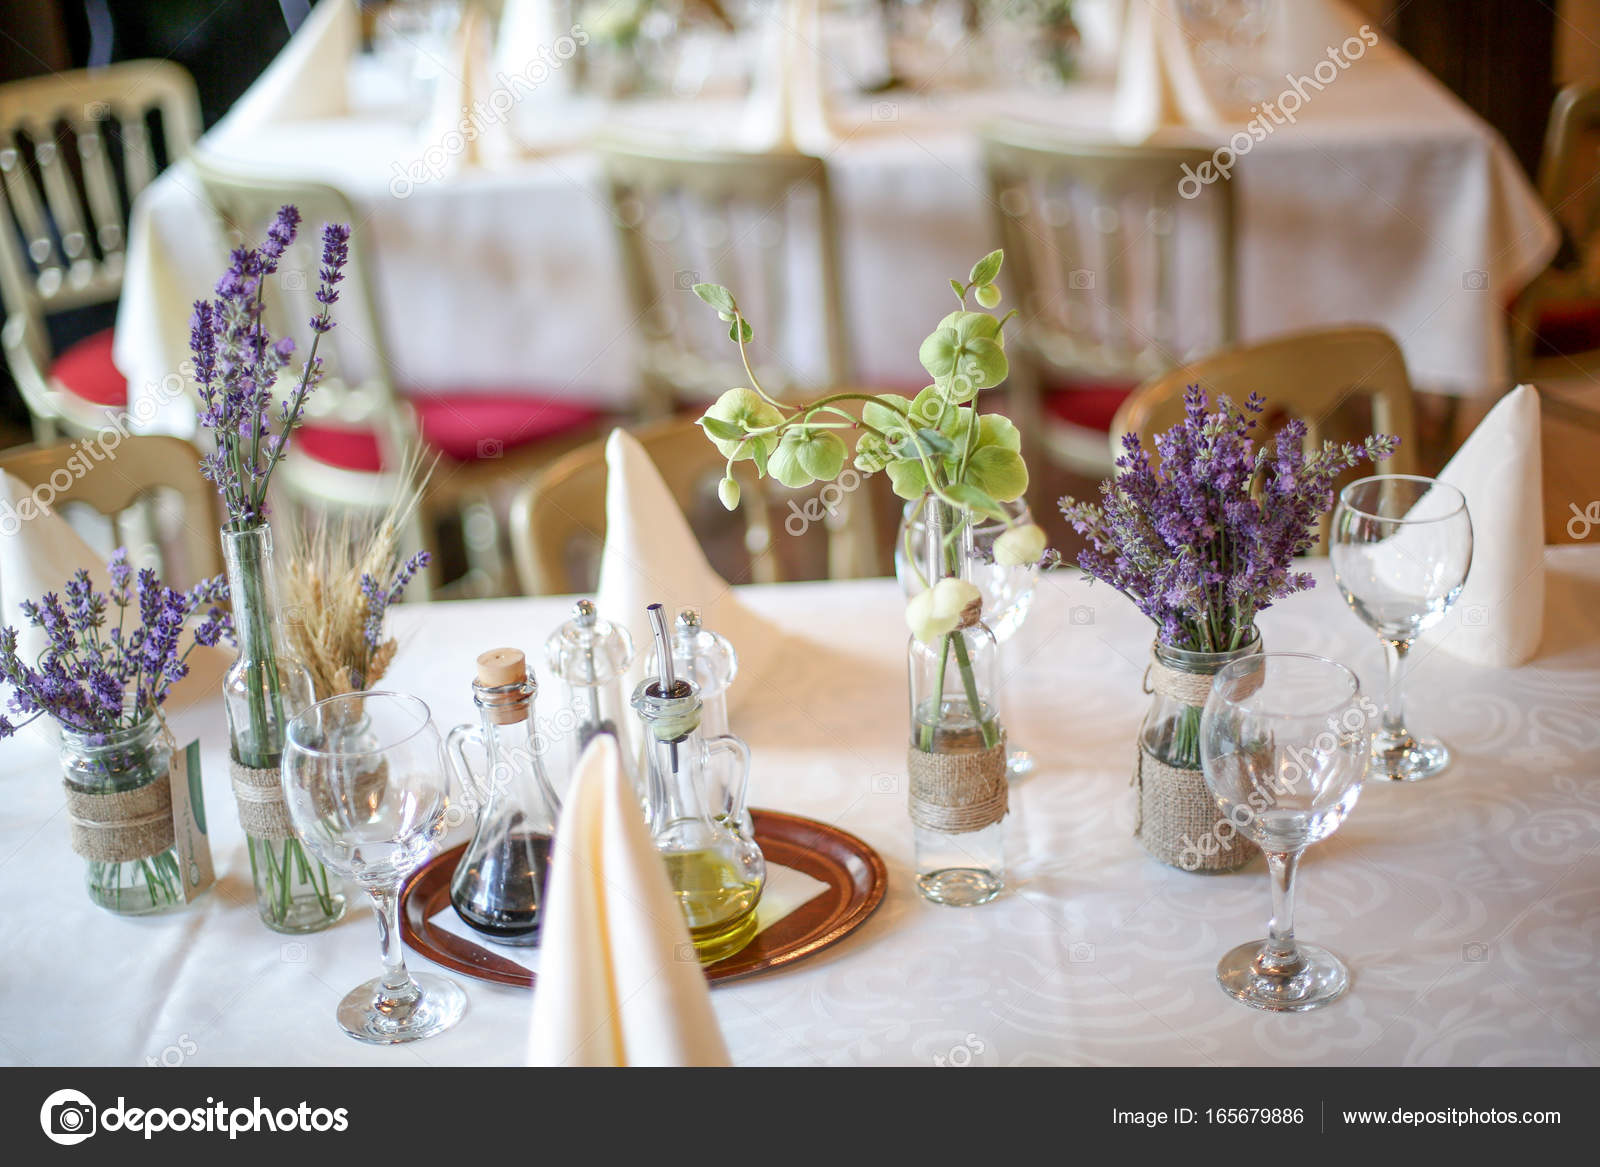 Wedding decoration table with lavender and greenery stock photo wedding decoration table with lavender and greenery stock photo junglespirit Gallery